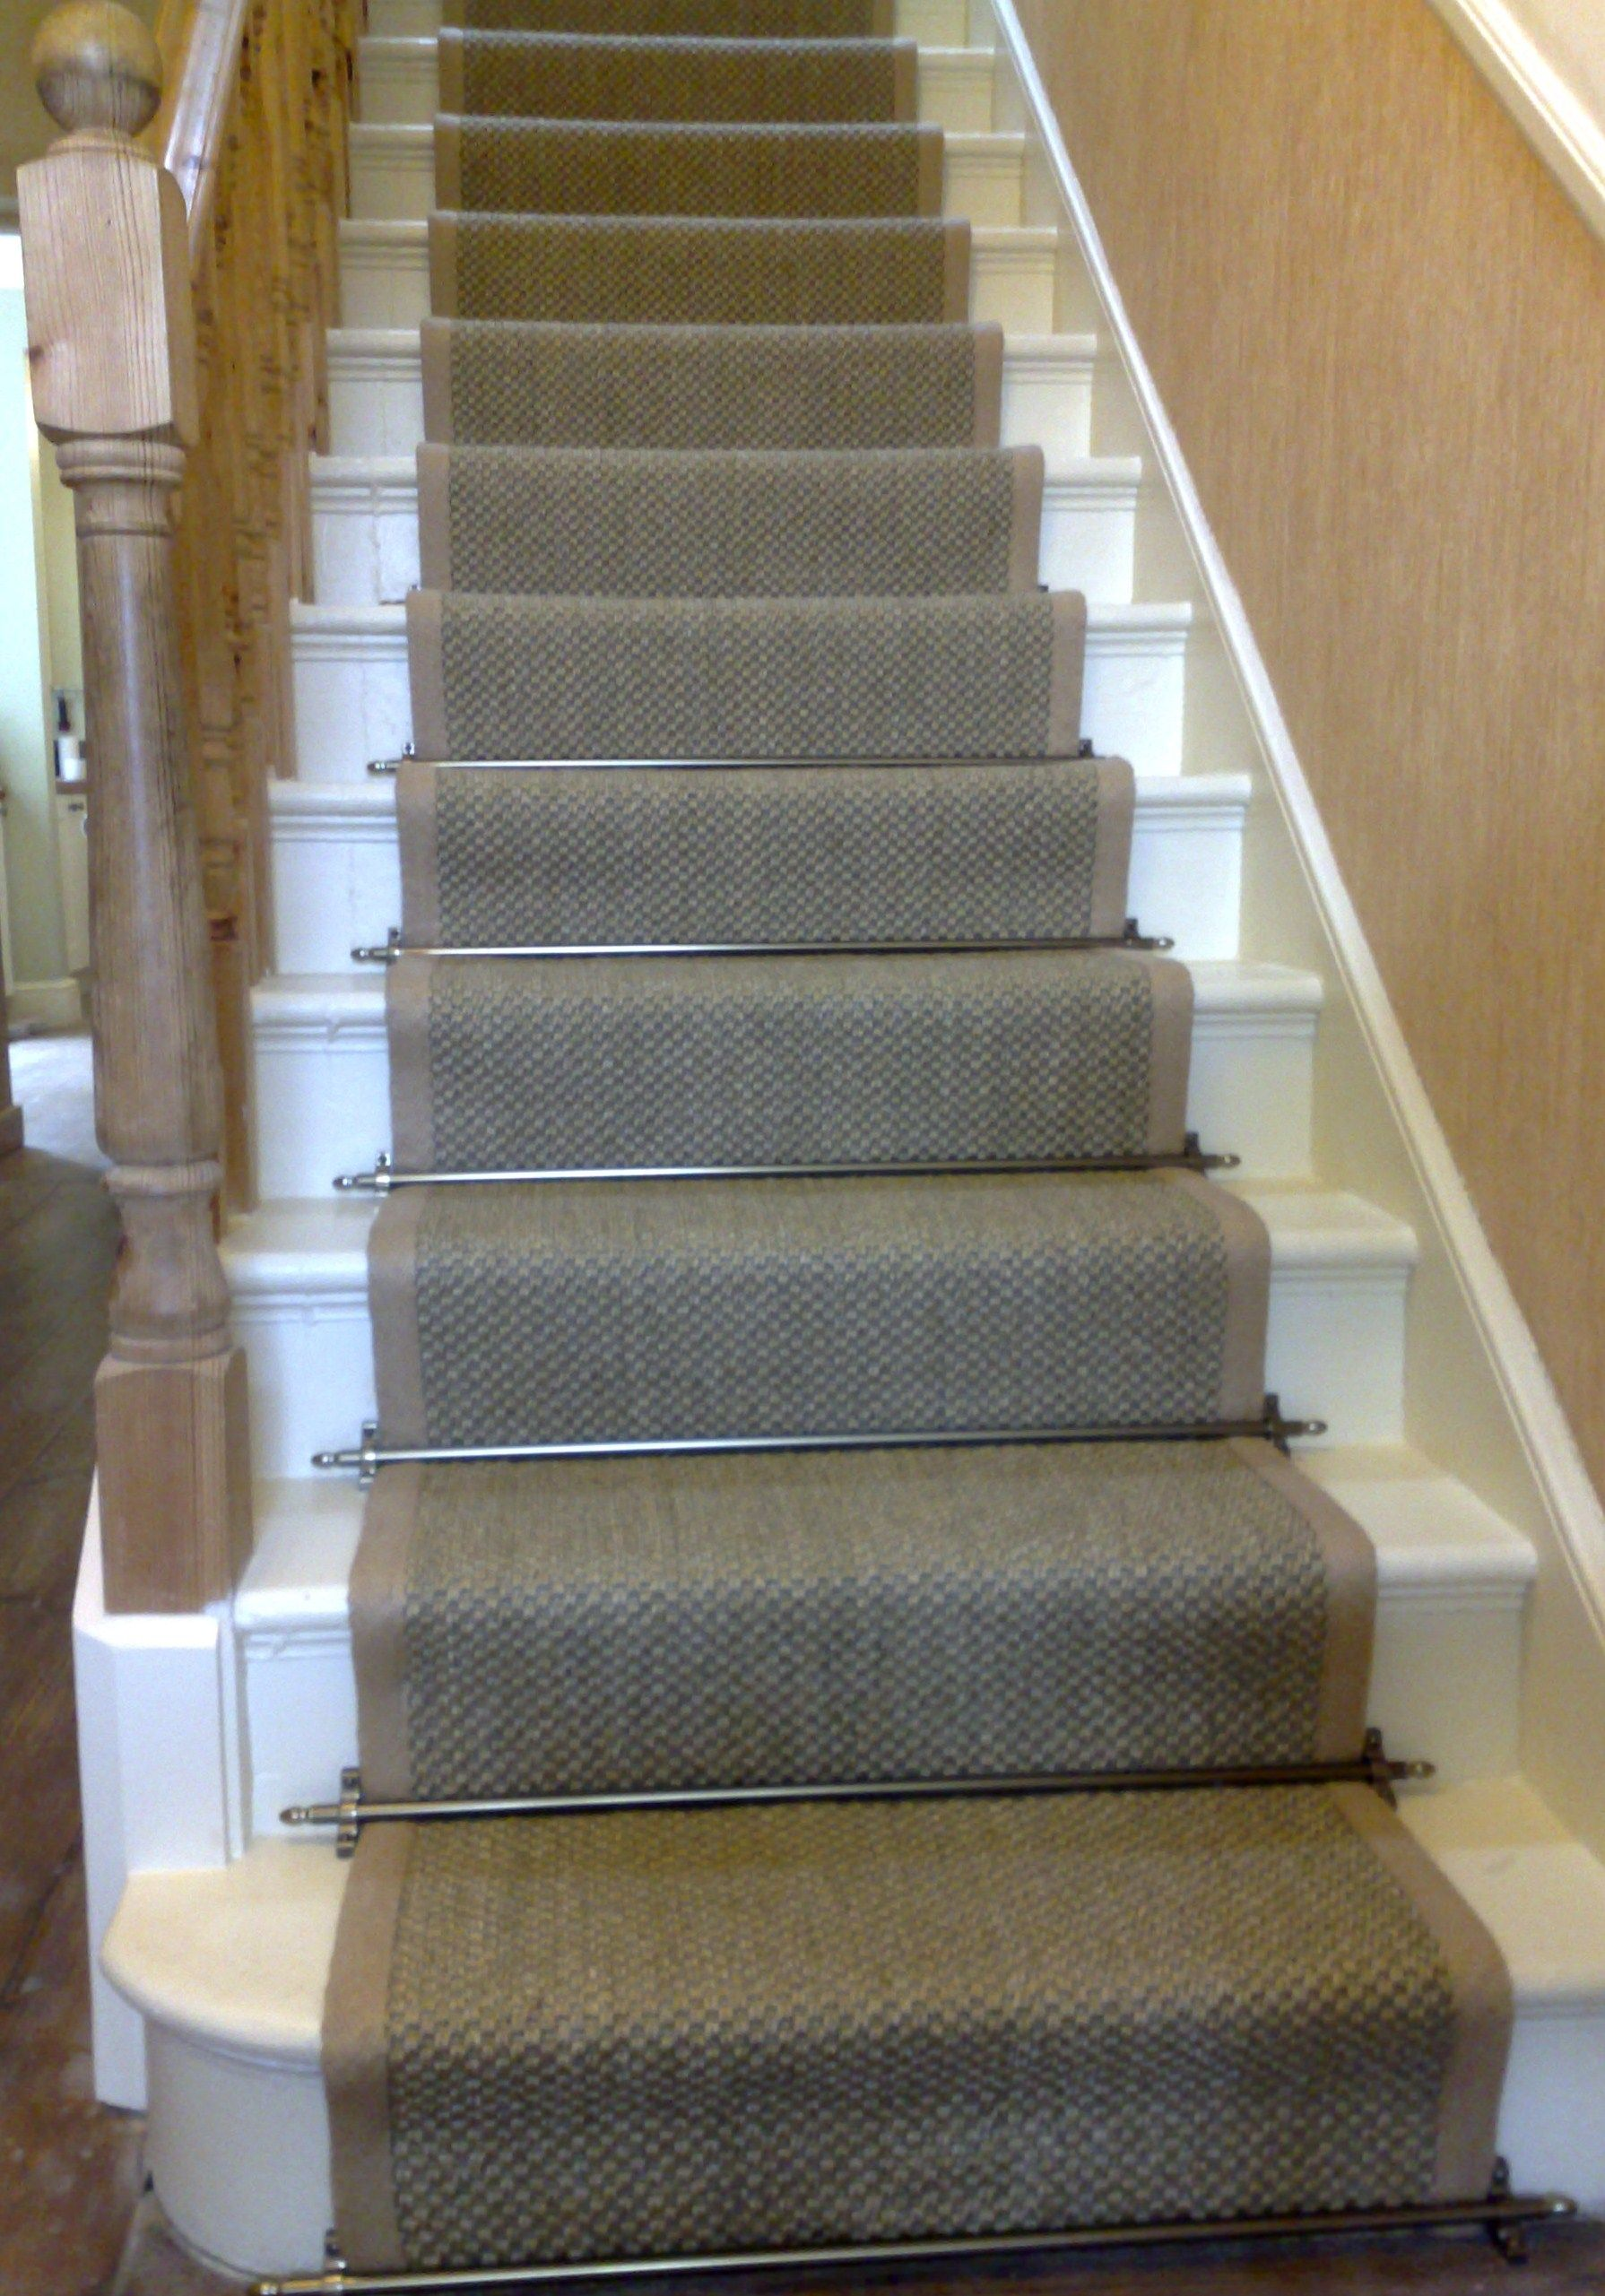 Hallway stair carpet ideas  Sisal Stair Runner with Bound edges the solid brass stairrods give